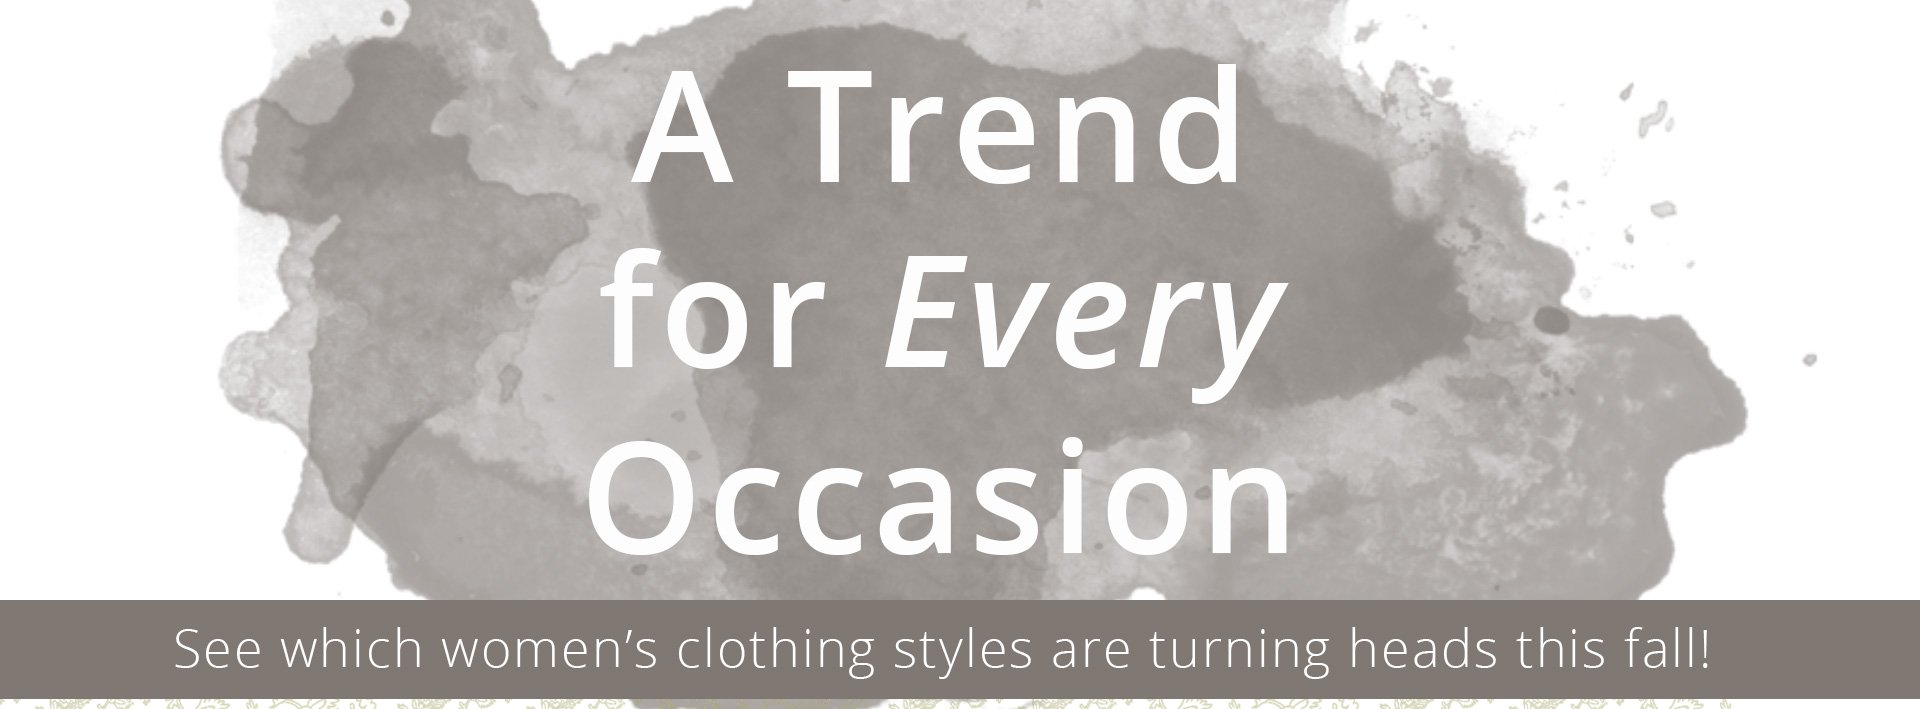 A trend for every occasion. See which women's' clothing styles are turning heads this fall.